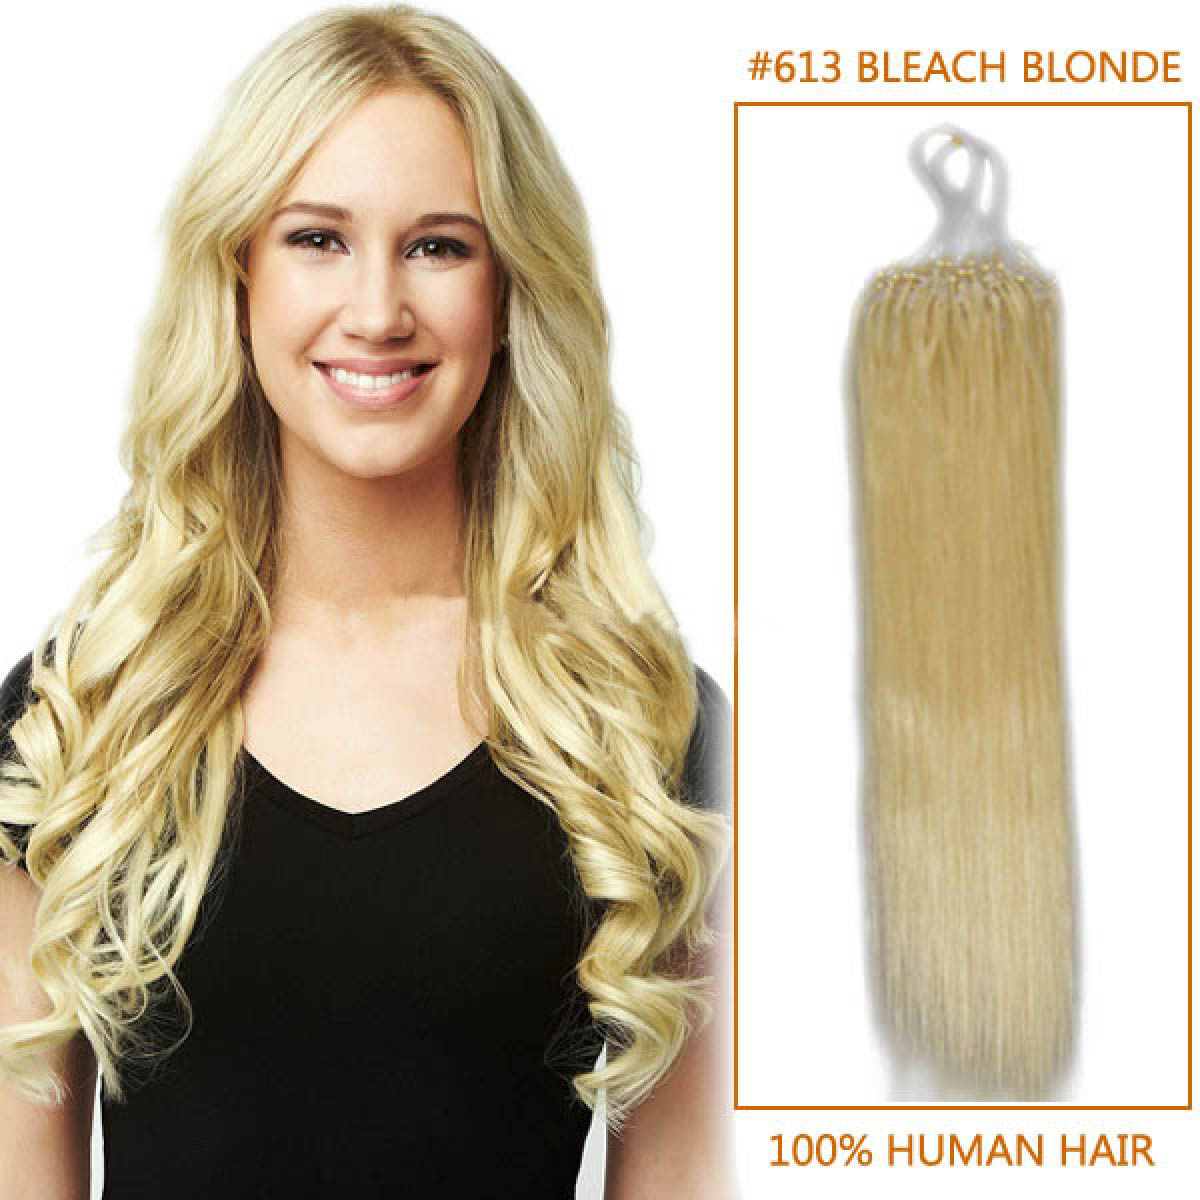 24 Inch Hair Extensions Uk Choice Image Hair Extensions For Short Hair